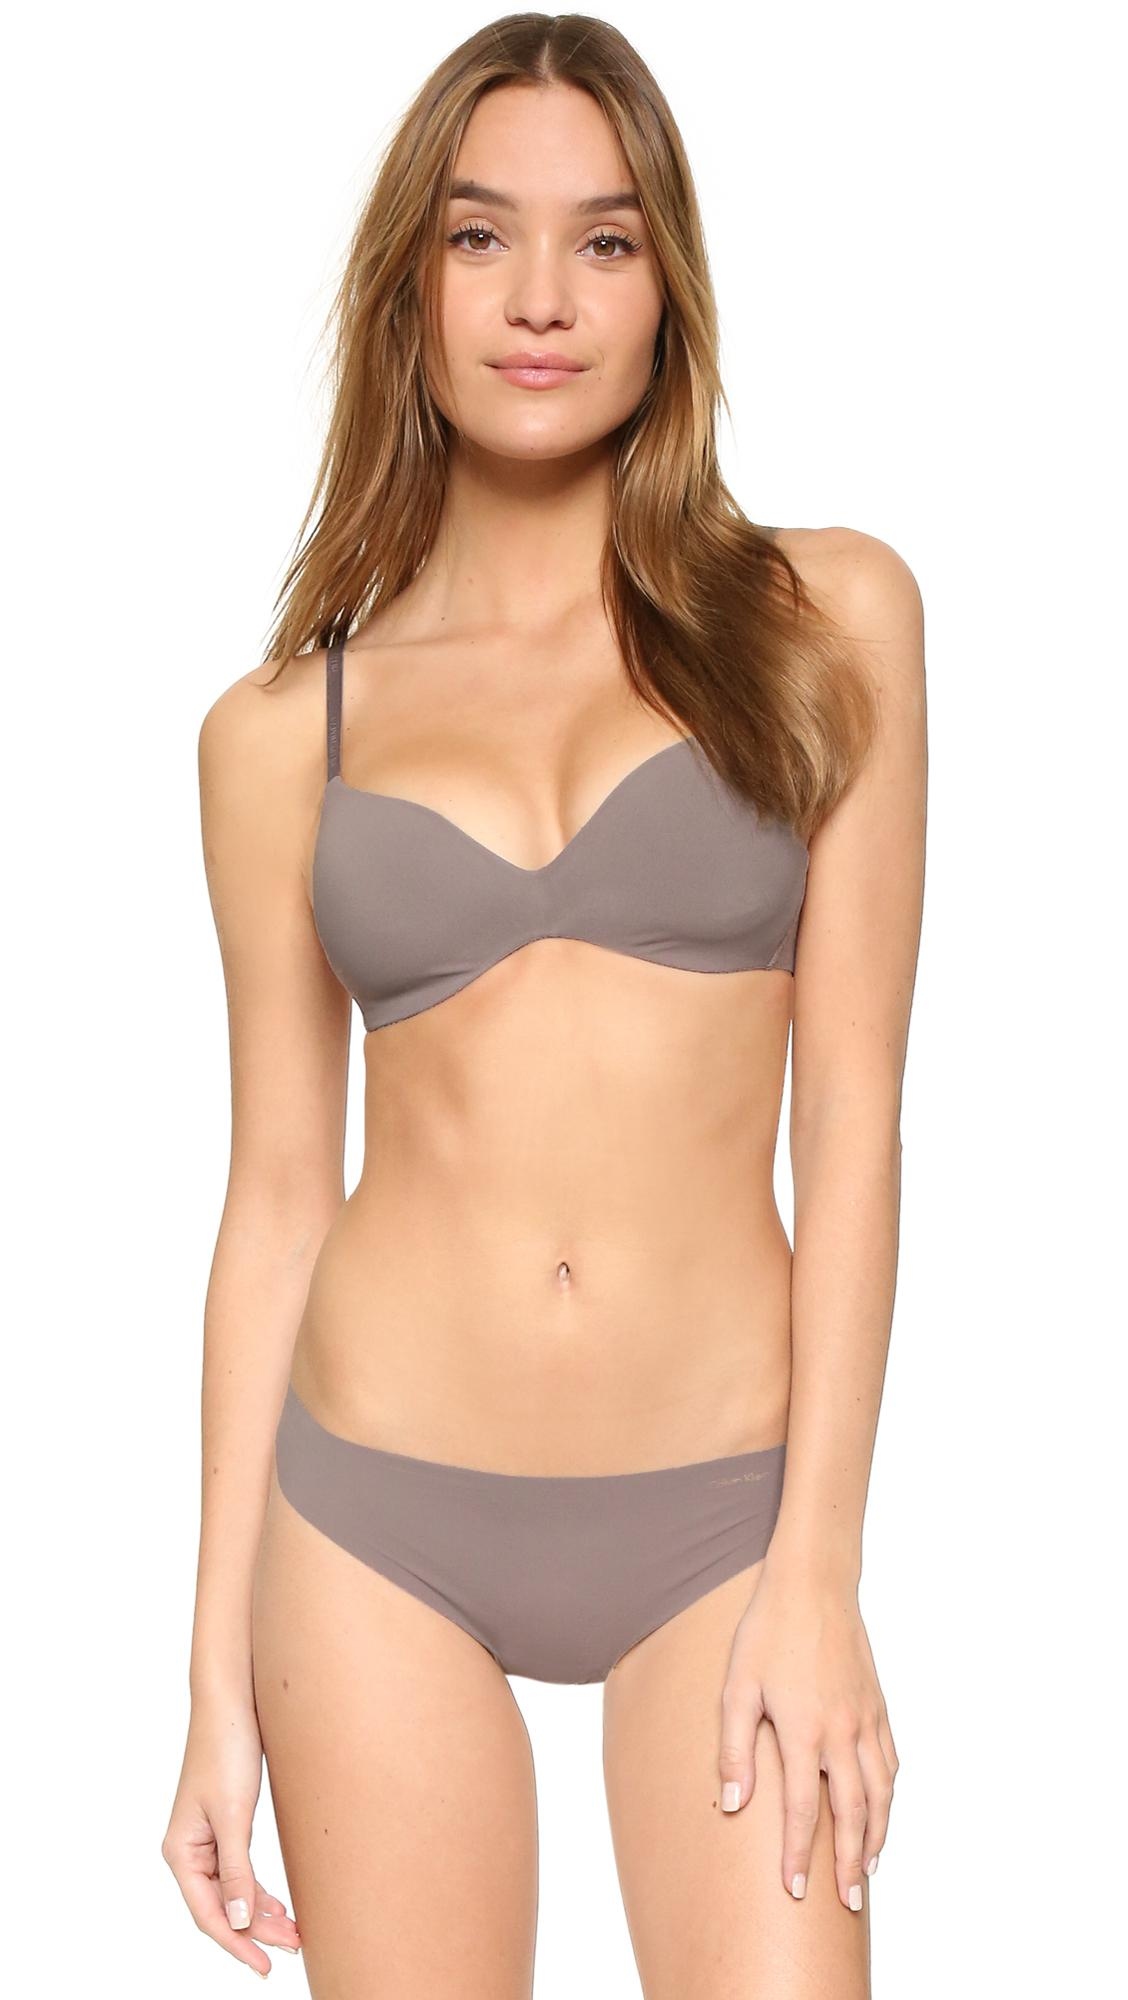 a4e8df3d2d Calvin Klein Perfectly Fit Wireless Contour Bra in Gray - Lyst